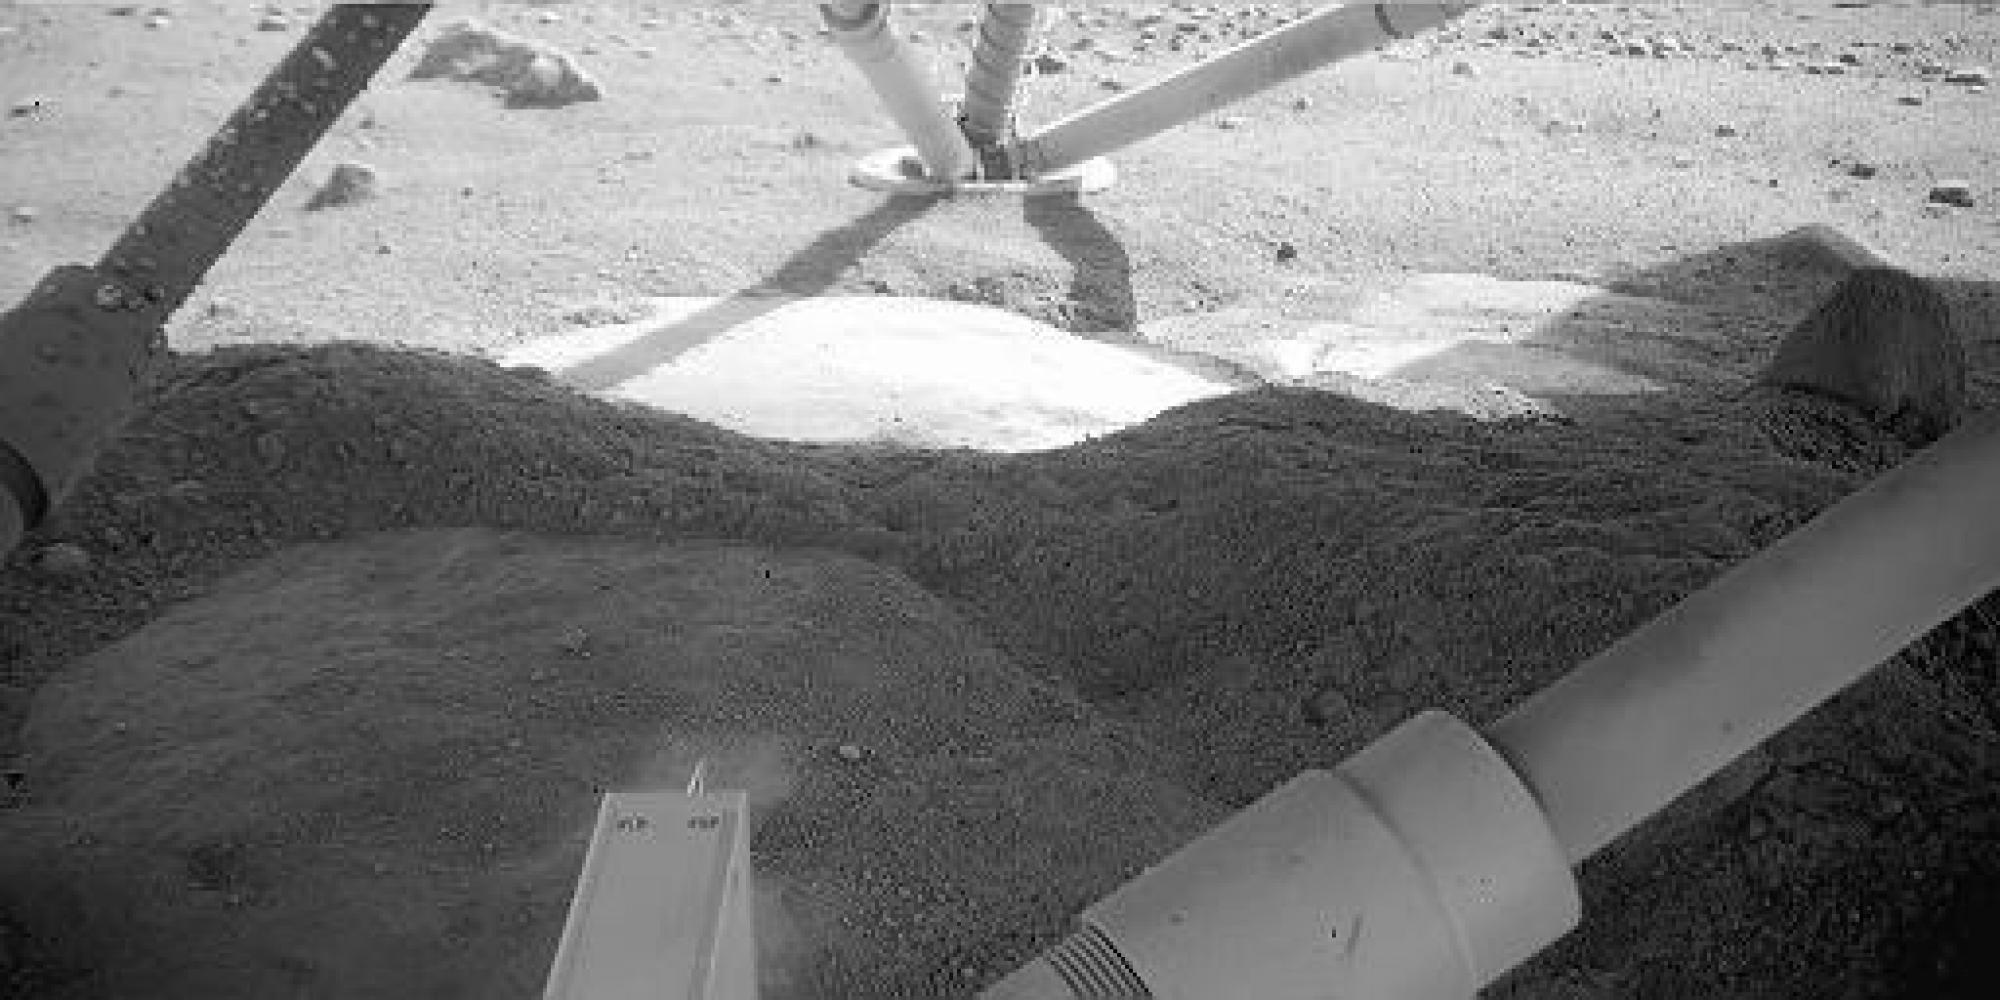 """Phoenix's Robotic Arm Camera took this image on June 2, 2008, on the eighth Martian day of the mission after landing. The light feature in the middle of the image below the leg is informally called """"Holy Cow."""" The dust, shown in the dark foreground, has b"""